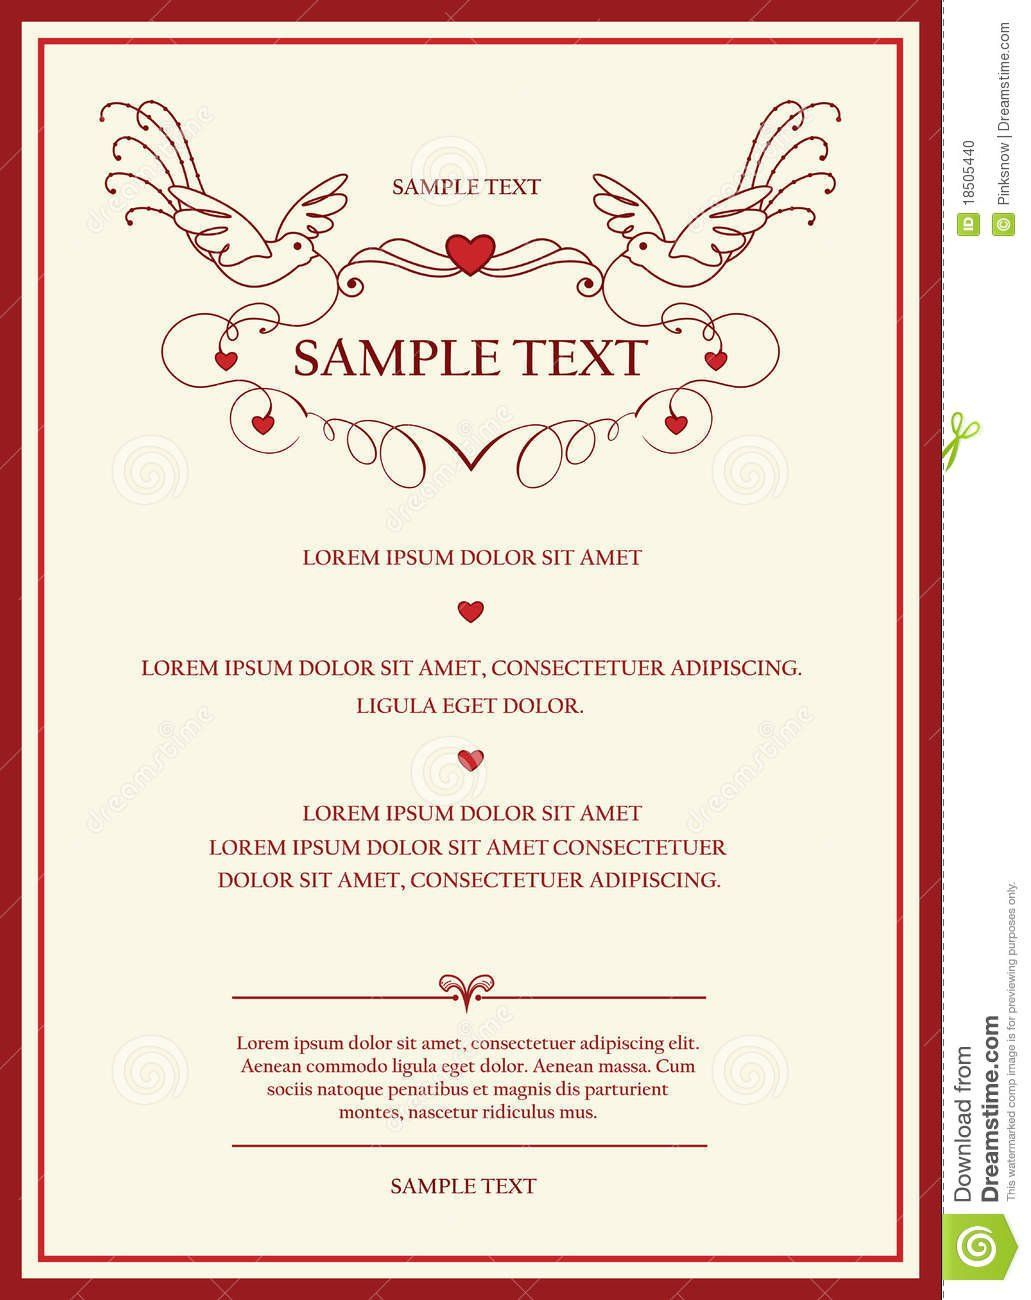 unveiling tombstone invitation sample thousands of documents in our library is totally free to download for personal use feel free to download our